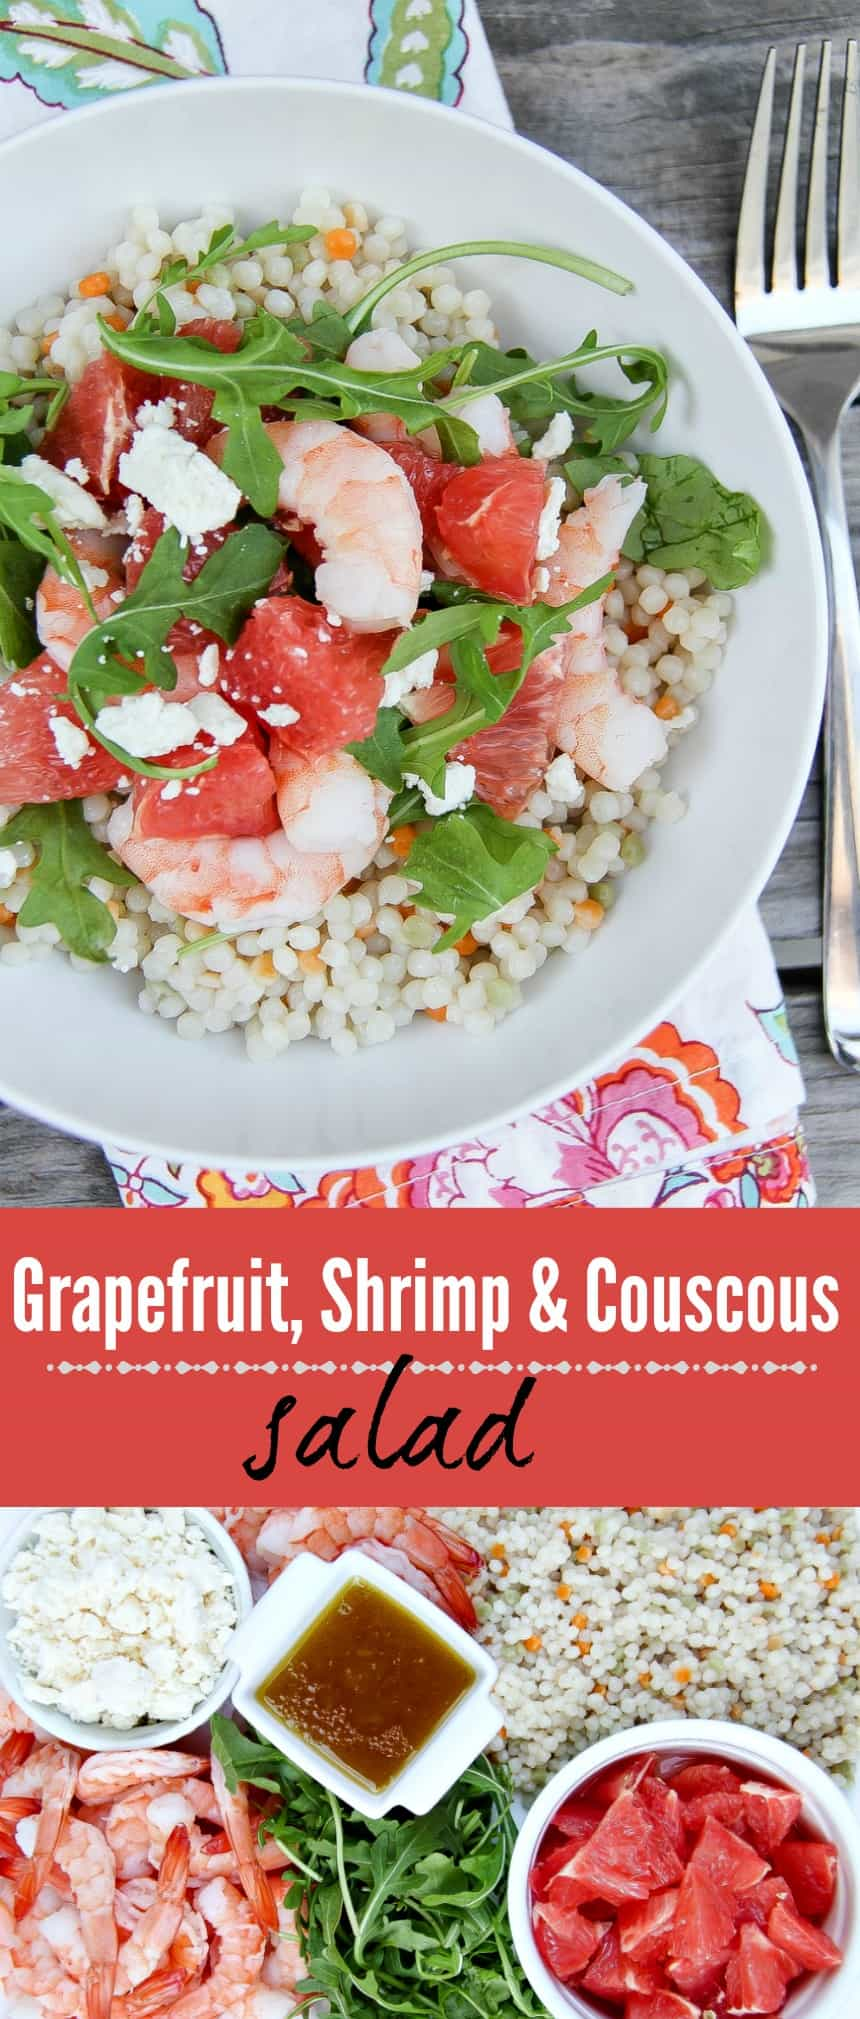 A light and tasty grapefruit, shrimp and couscous salad.